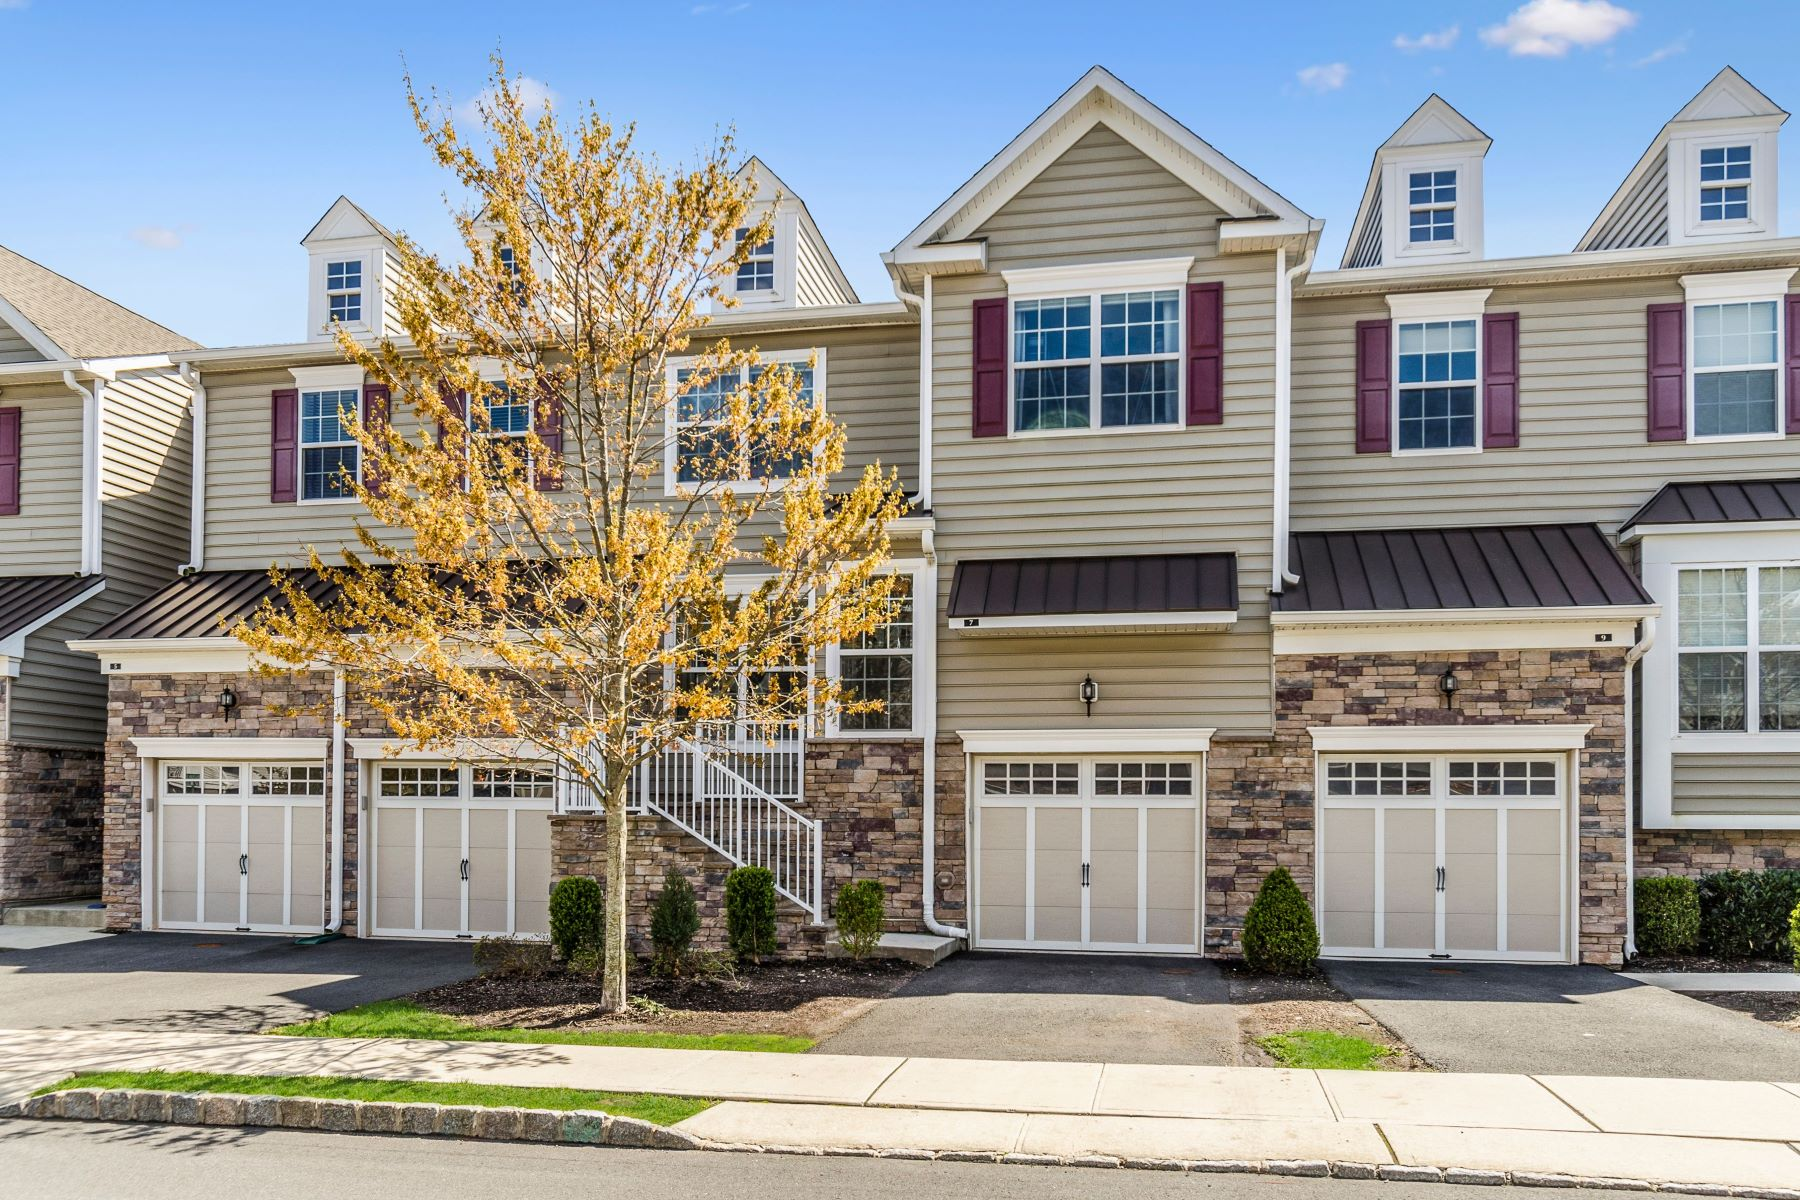 townhouses for Sale at A Designer Feel To This Montgomery Ridge Home 7 Braeburn Drive, Skillman, New Jersey 08558 United States